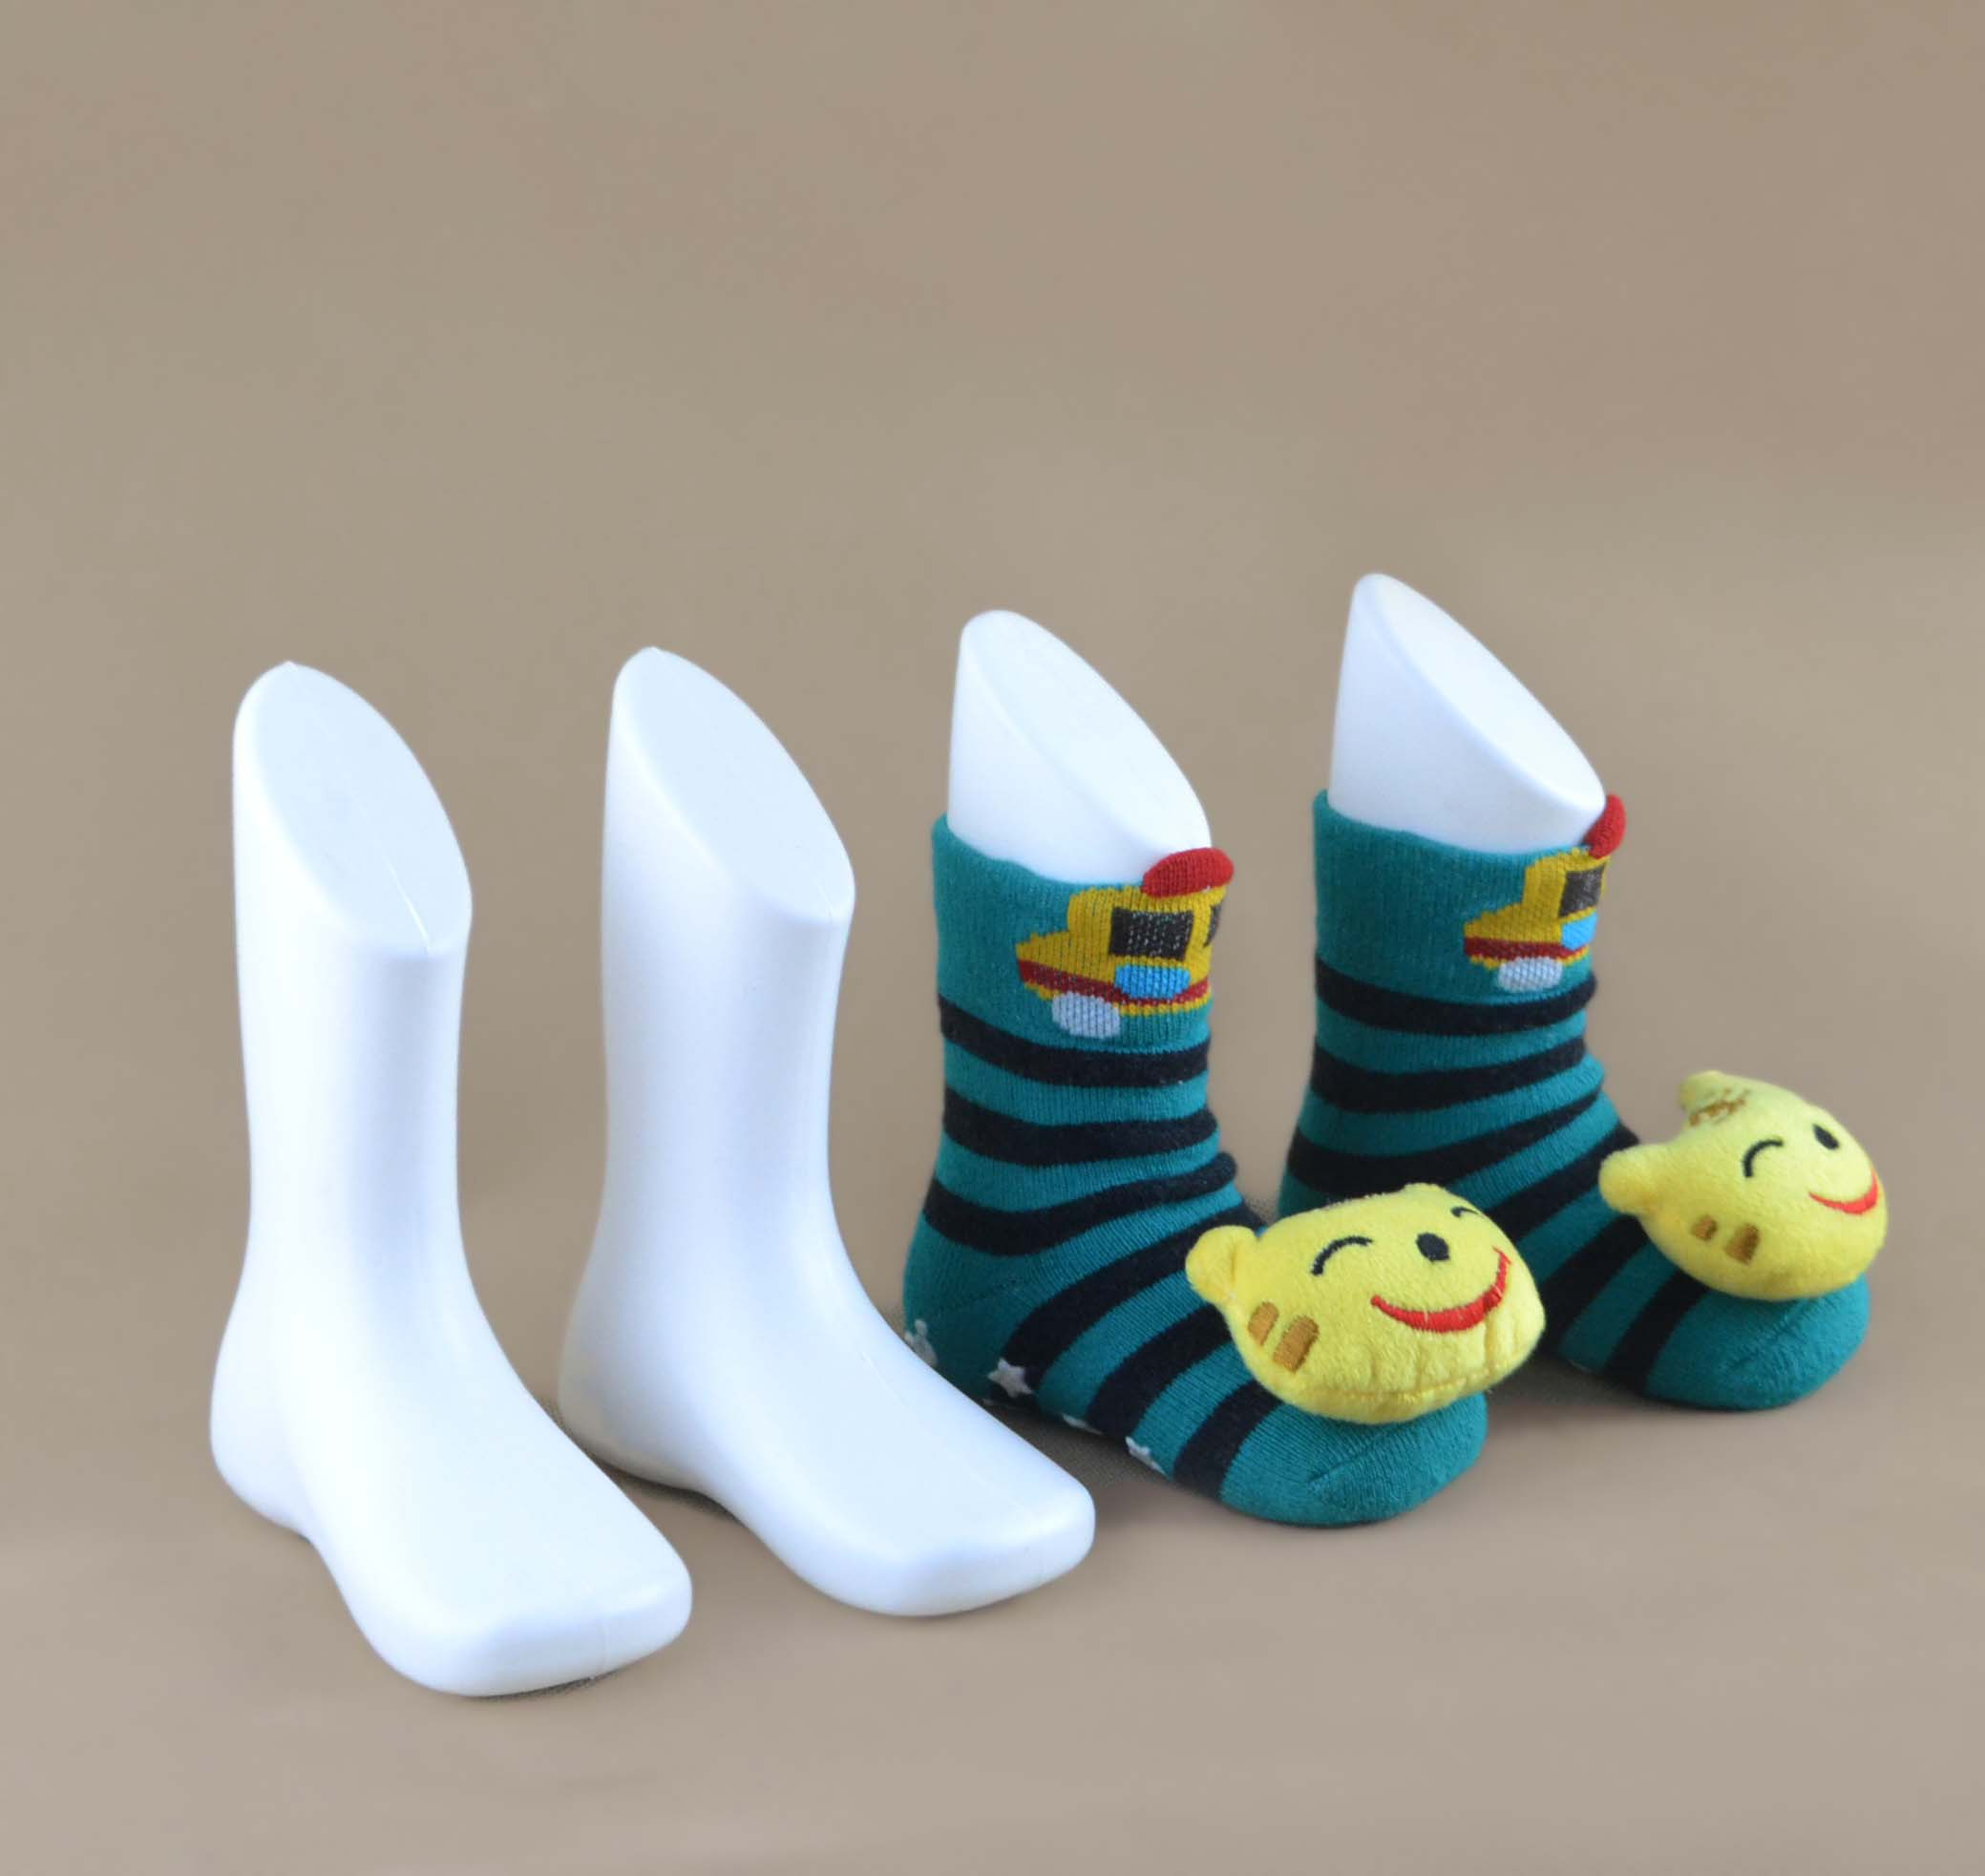 Thick magnet seamless' pictures props xiemo foot model foot mold mold mold socks stockings thick socks plastic leg